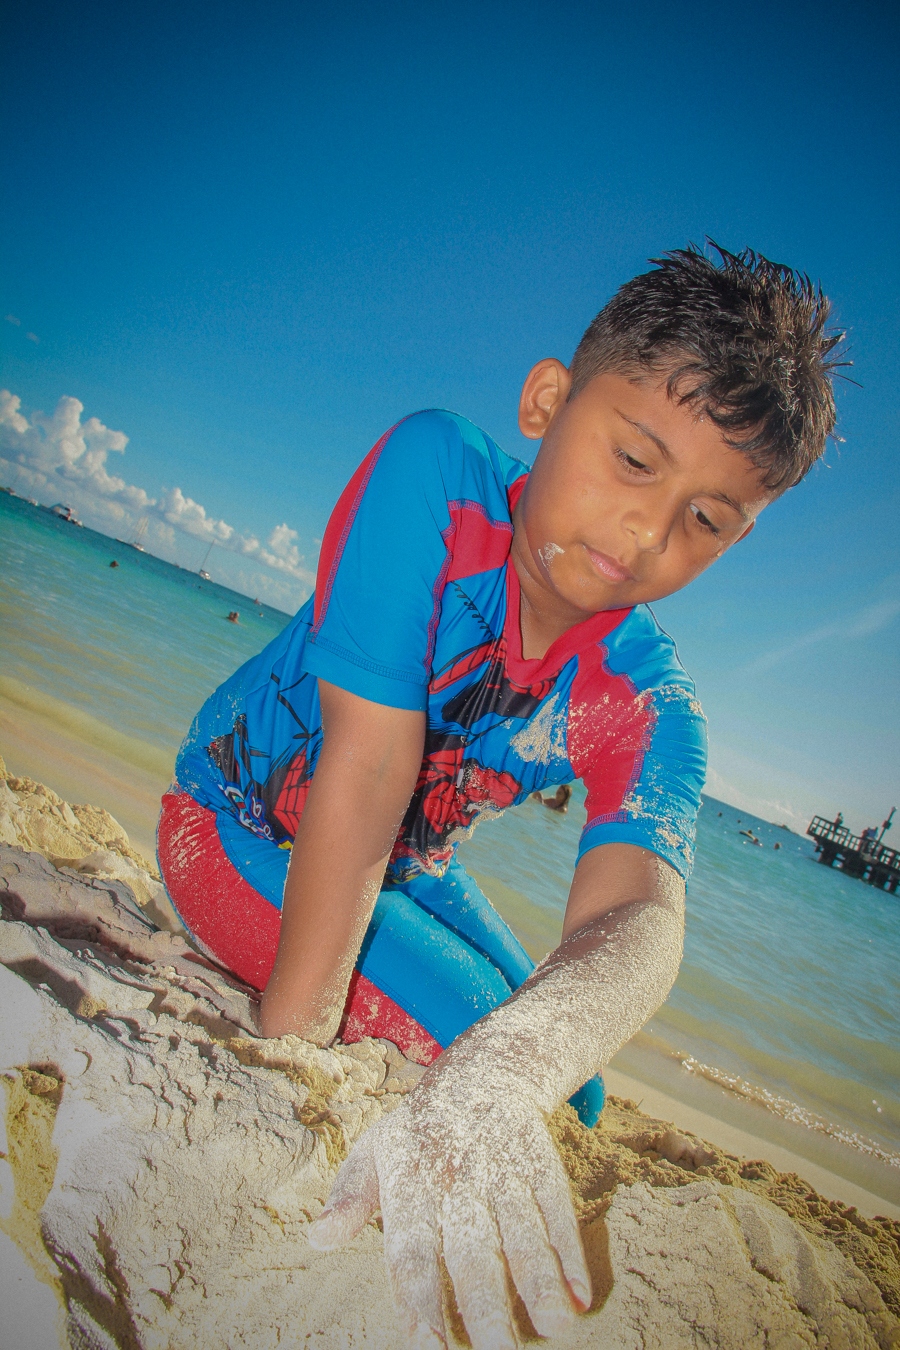 Time Out - Shivam playing in the sand